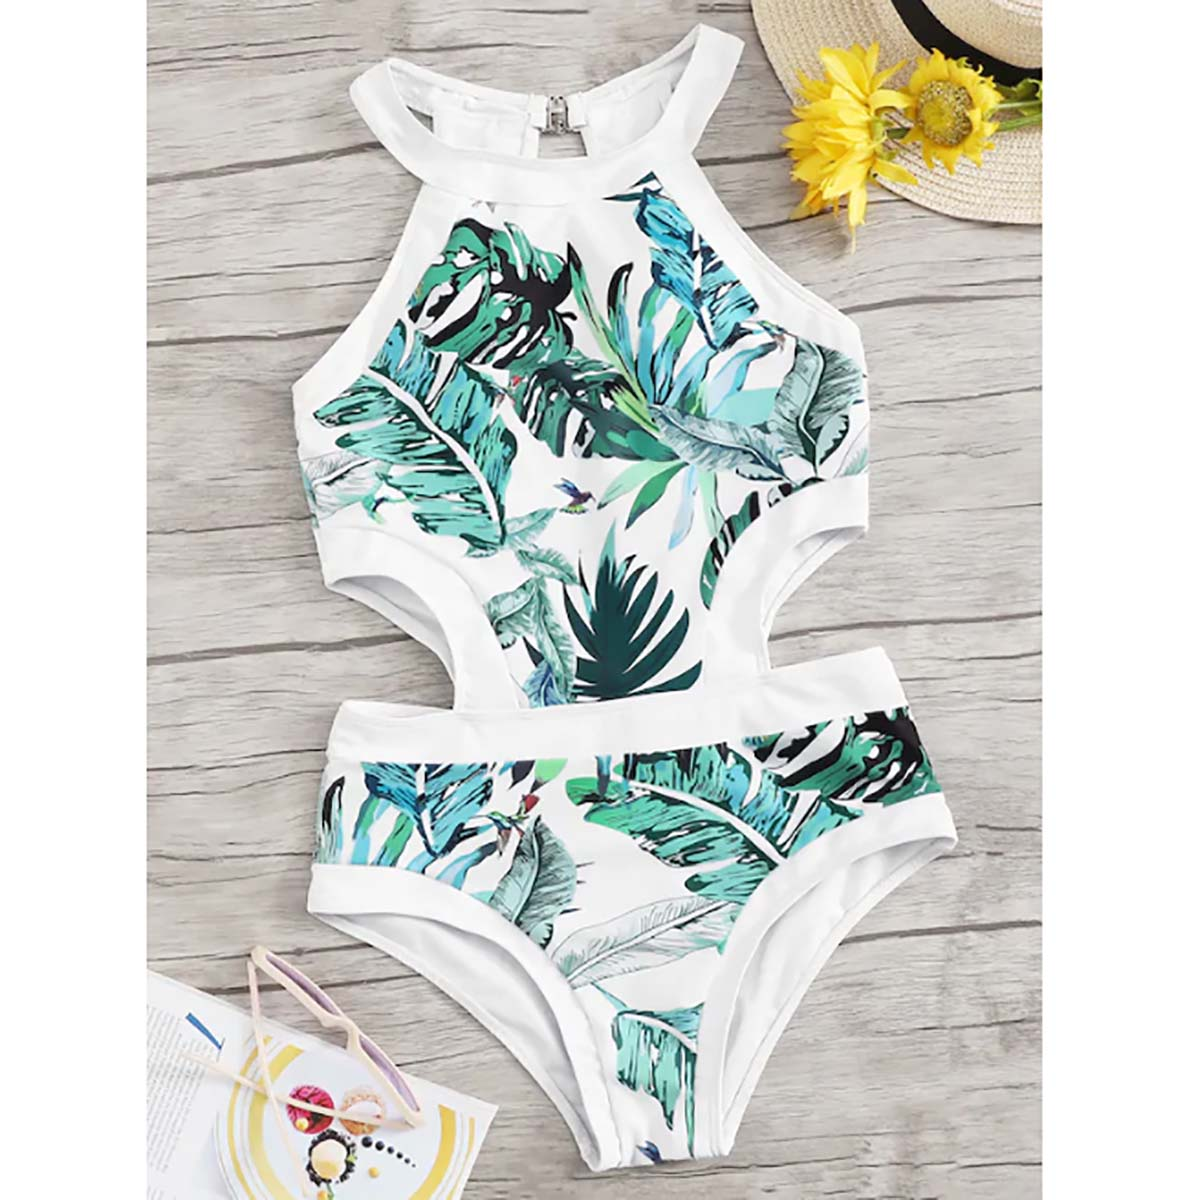 Tropical Leaf Print One Piece Swimsuit 2019 Sexy Women Swimwear Strappy Padded Swimming Suit For Women Back W Bodysuits Monokini